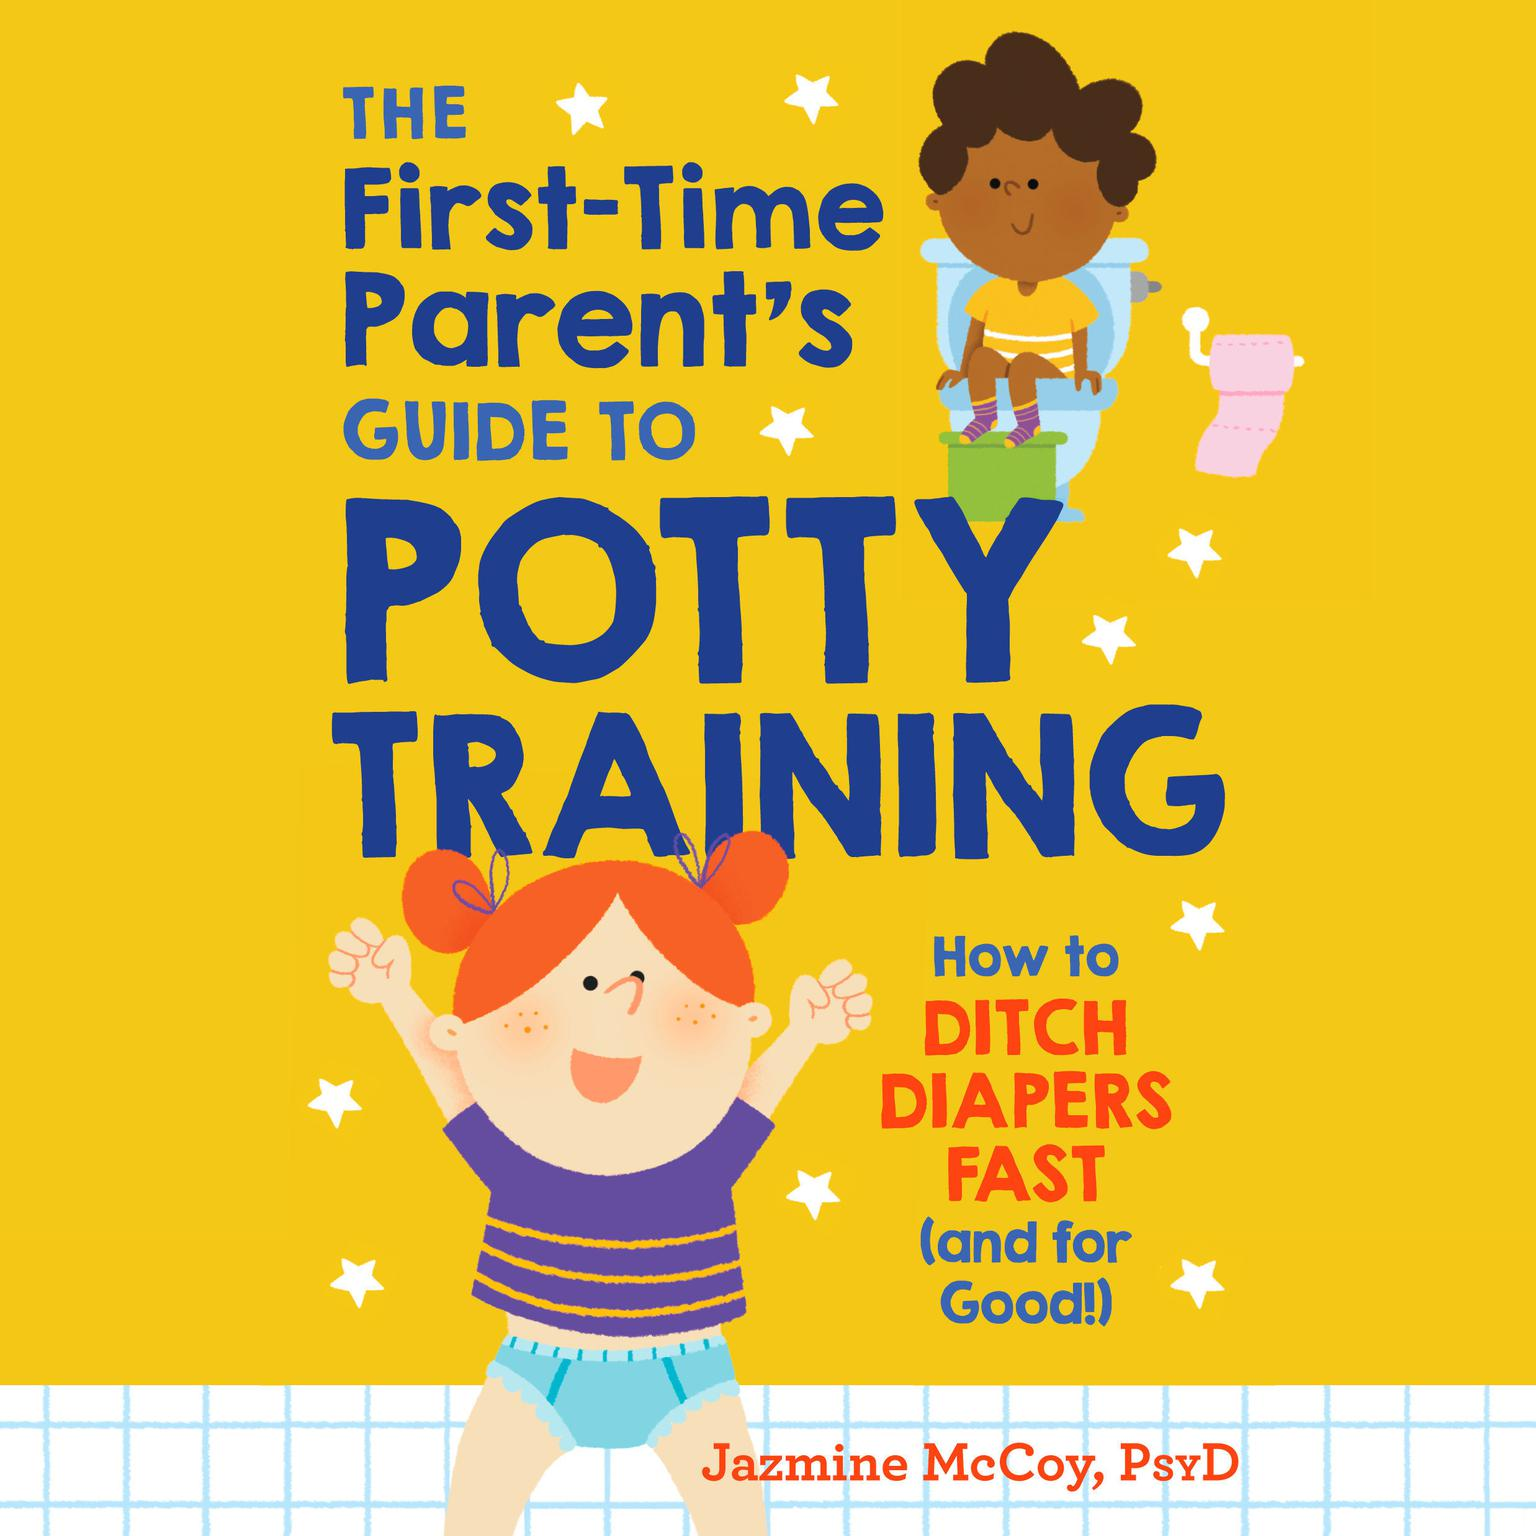 The First-Time Parents Guide to Potty Training: How to Ditch Diapers Fast (And for Good!) Audiobook, by Jazmine McCoy